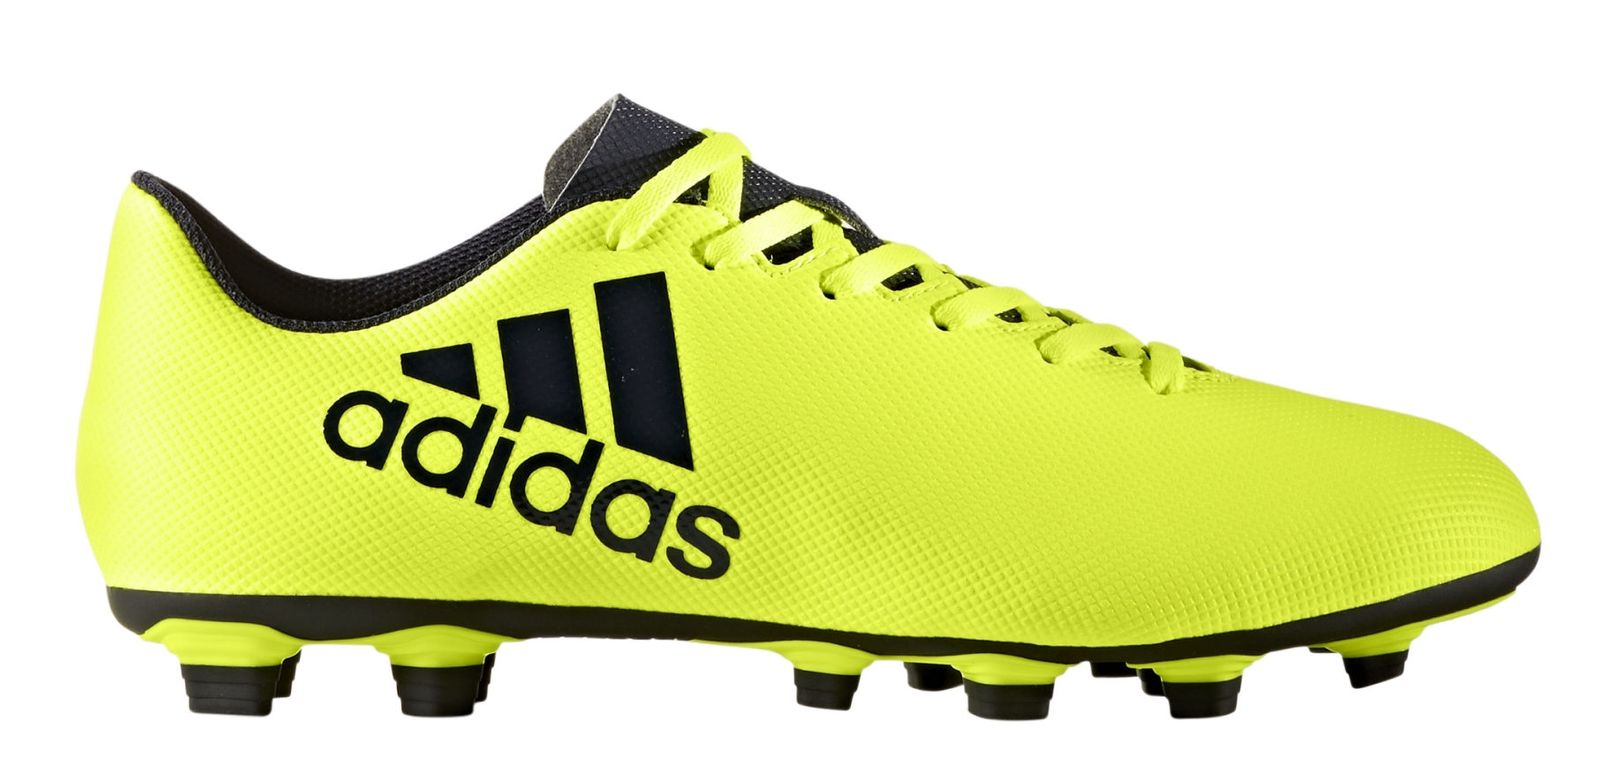 best authentic f81e0 7abbc cam fútbol botas X 17.4 FxG amarillo   negro Adidas performance hombres